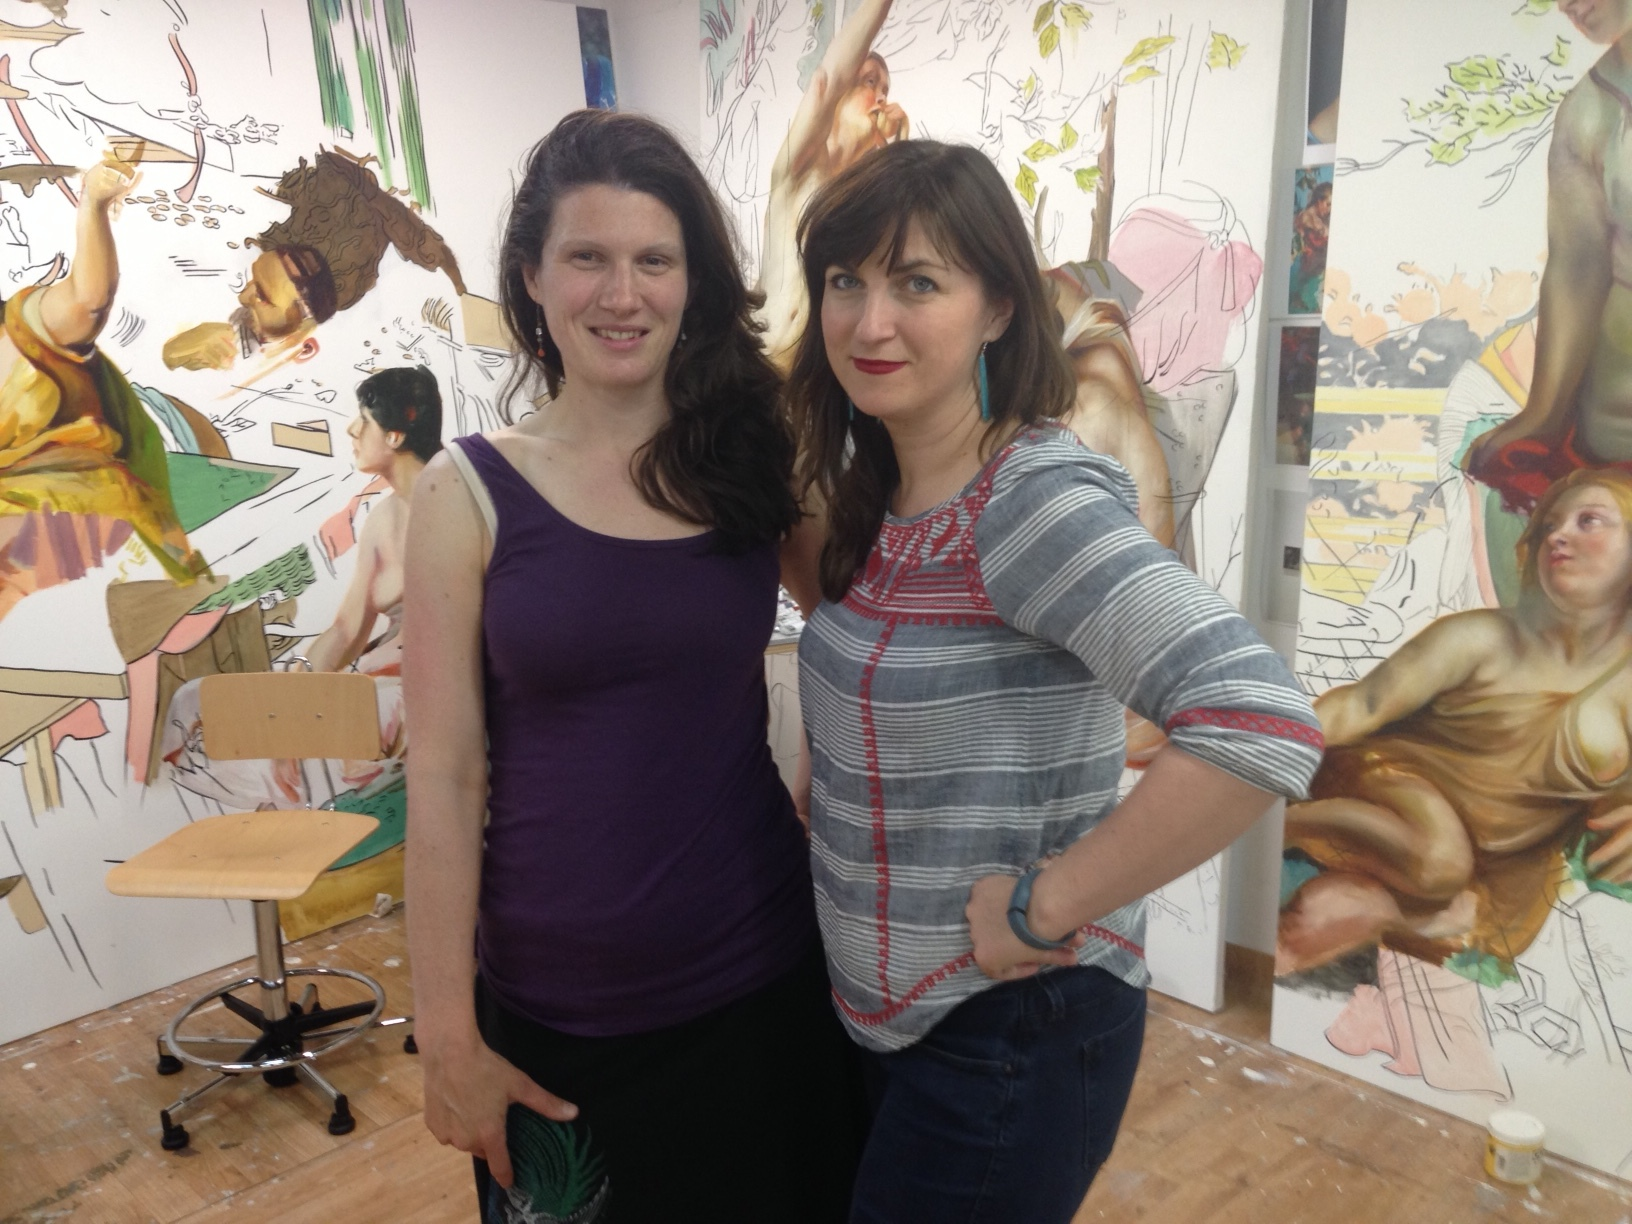 Me and Angie, in her studio!